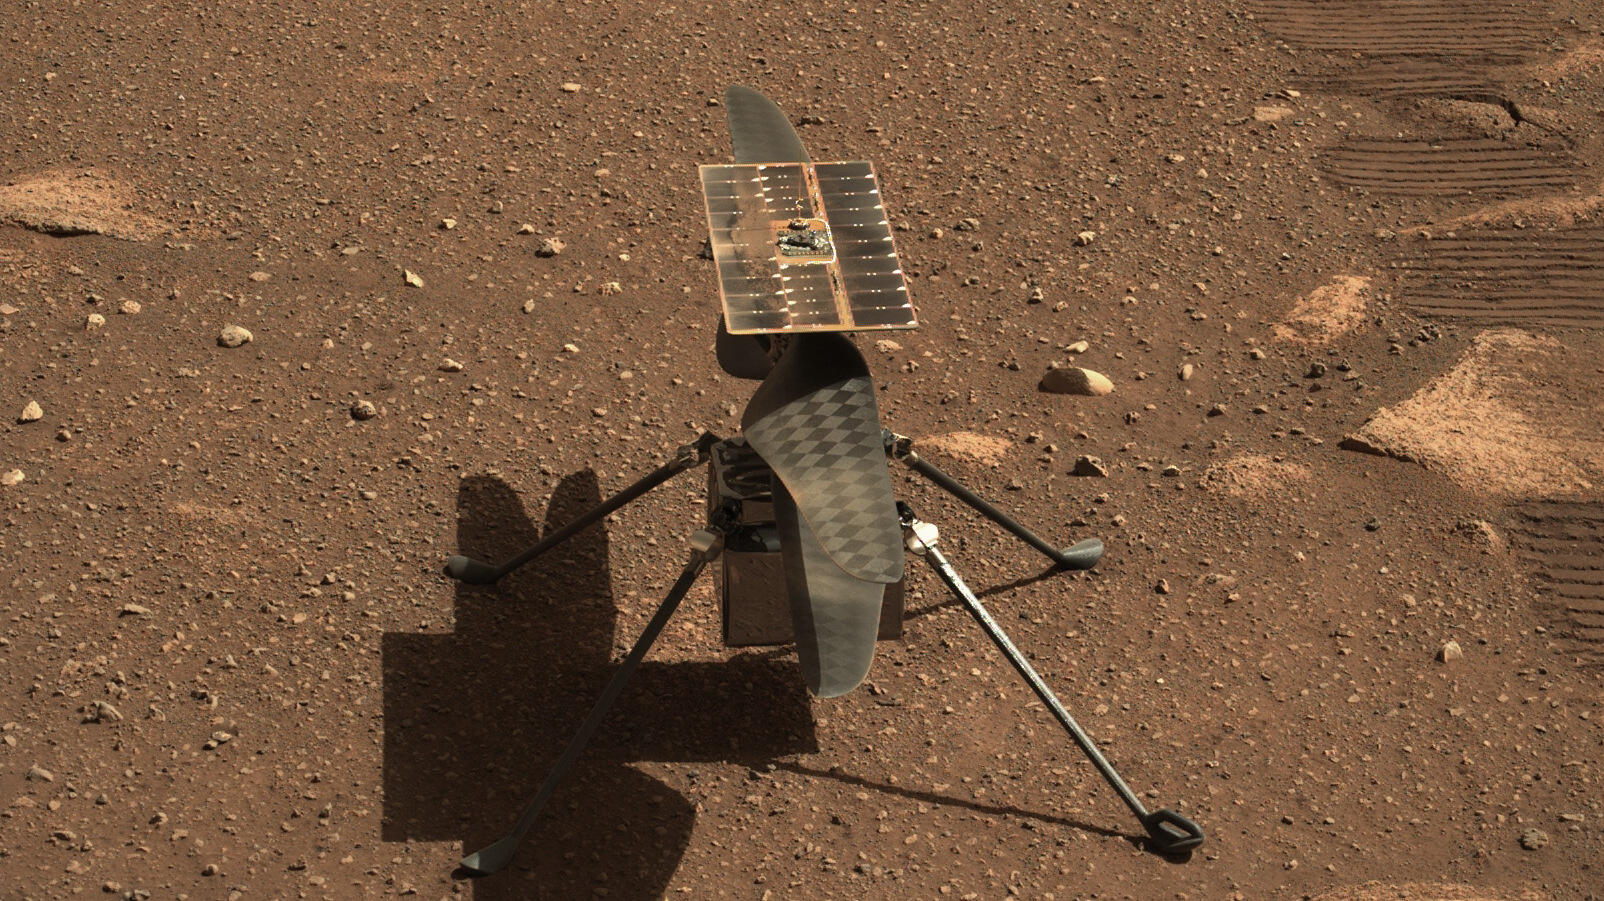 Mars Ingenuity helicopter goes farther and faster for dramatic fourth flight – CNET